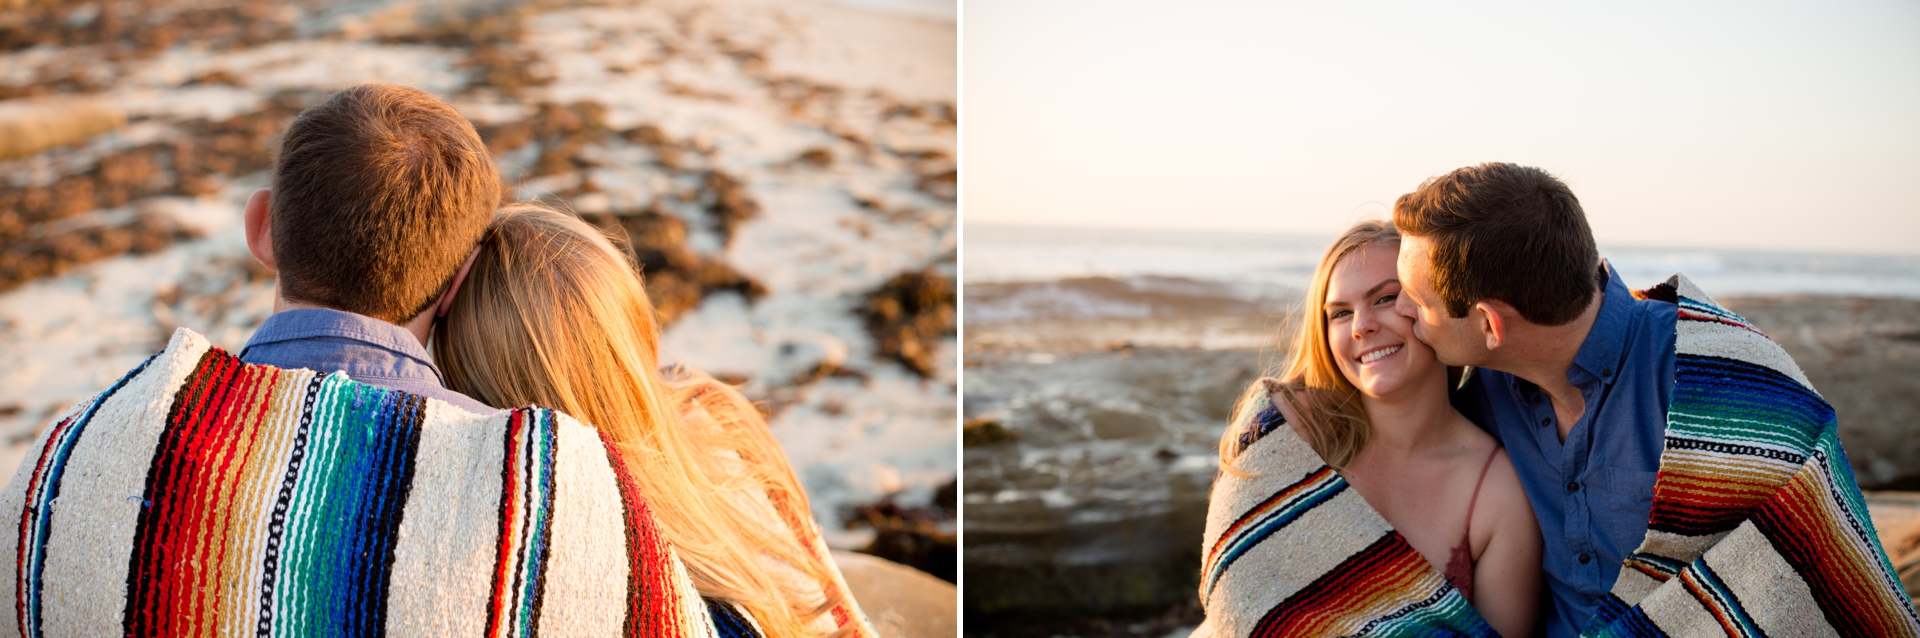 Windansea Beach Engagement Session 4.jpg